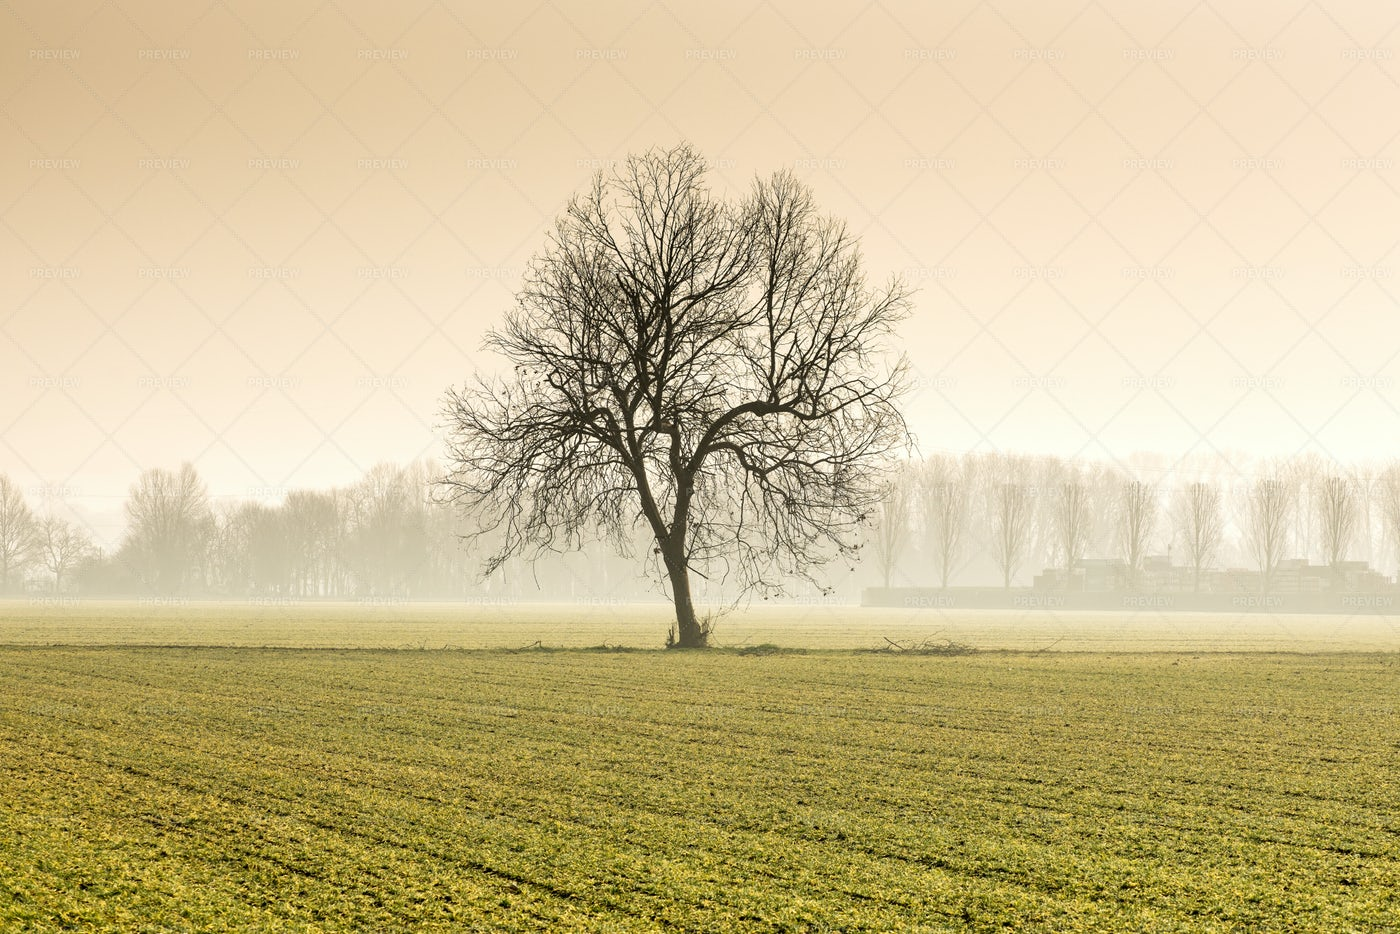 Lonely Tree In Field: Stock Photos